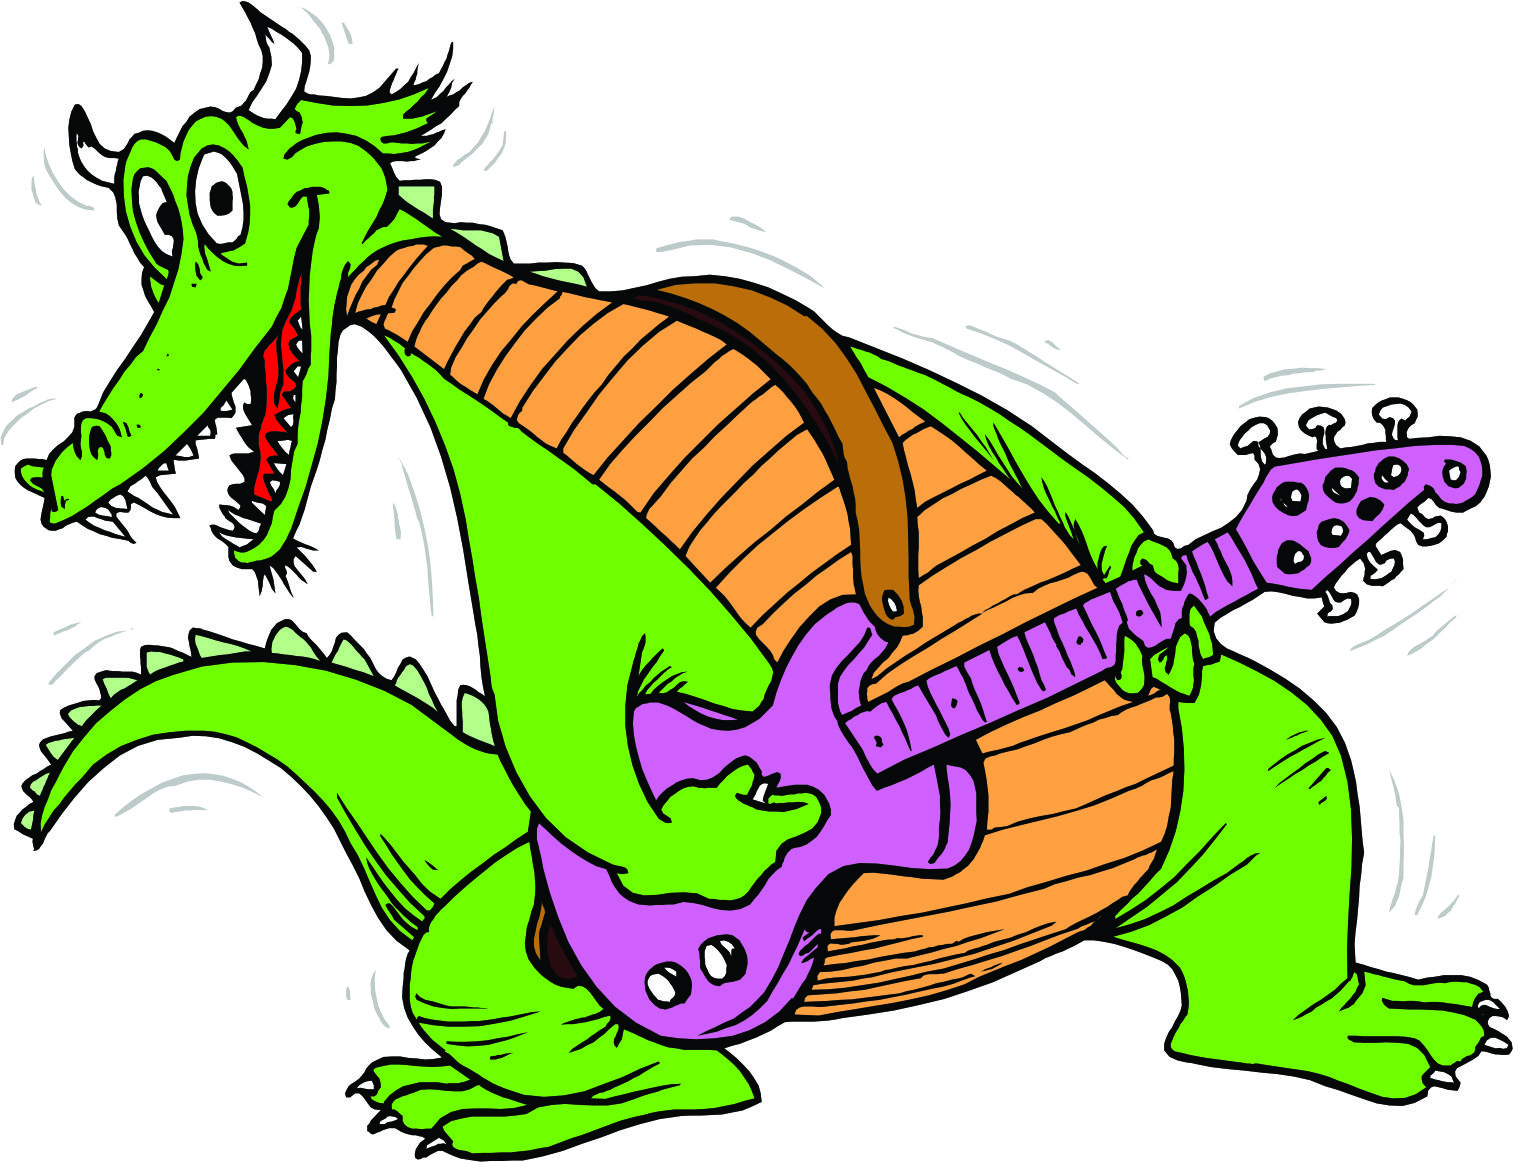 Dragon Guitarist Mascot